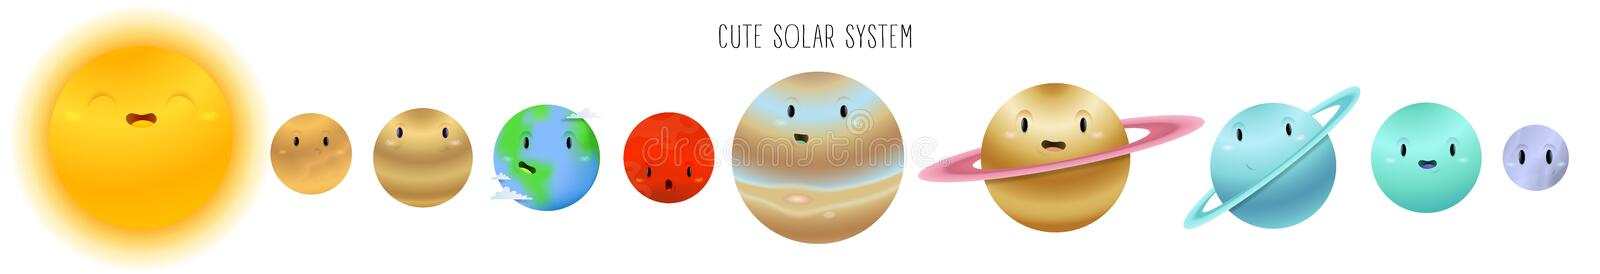 Cute solar system in cartoon style isolated on a white background stock illustration